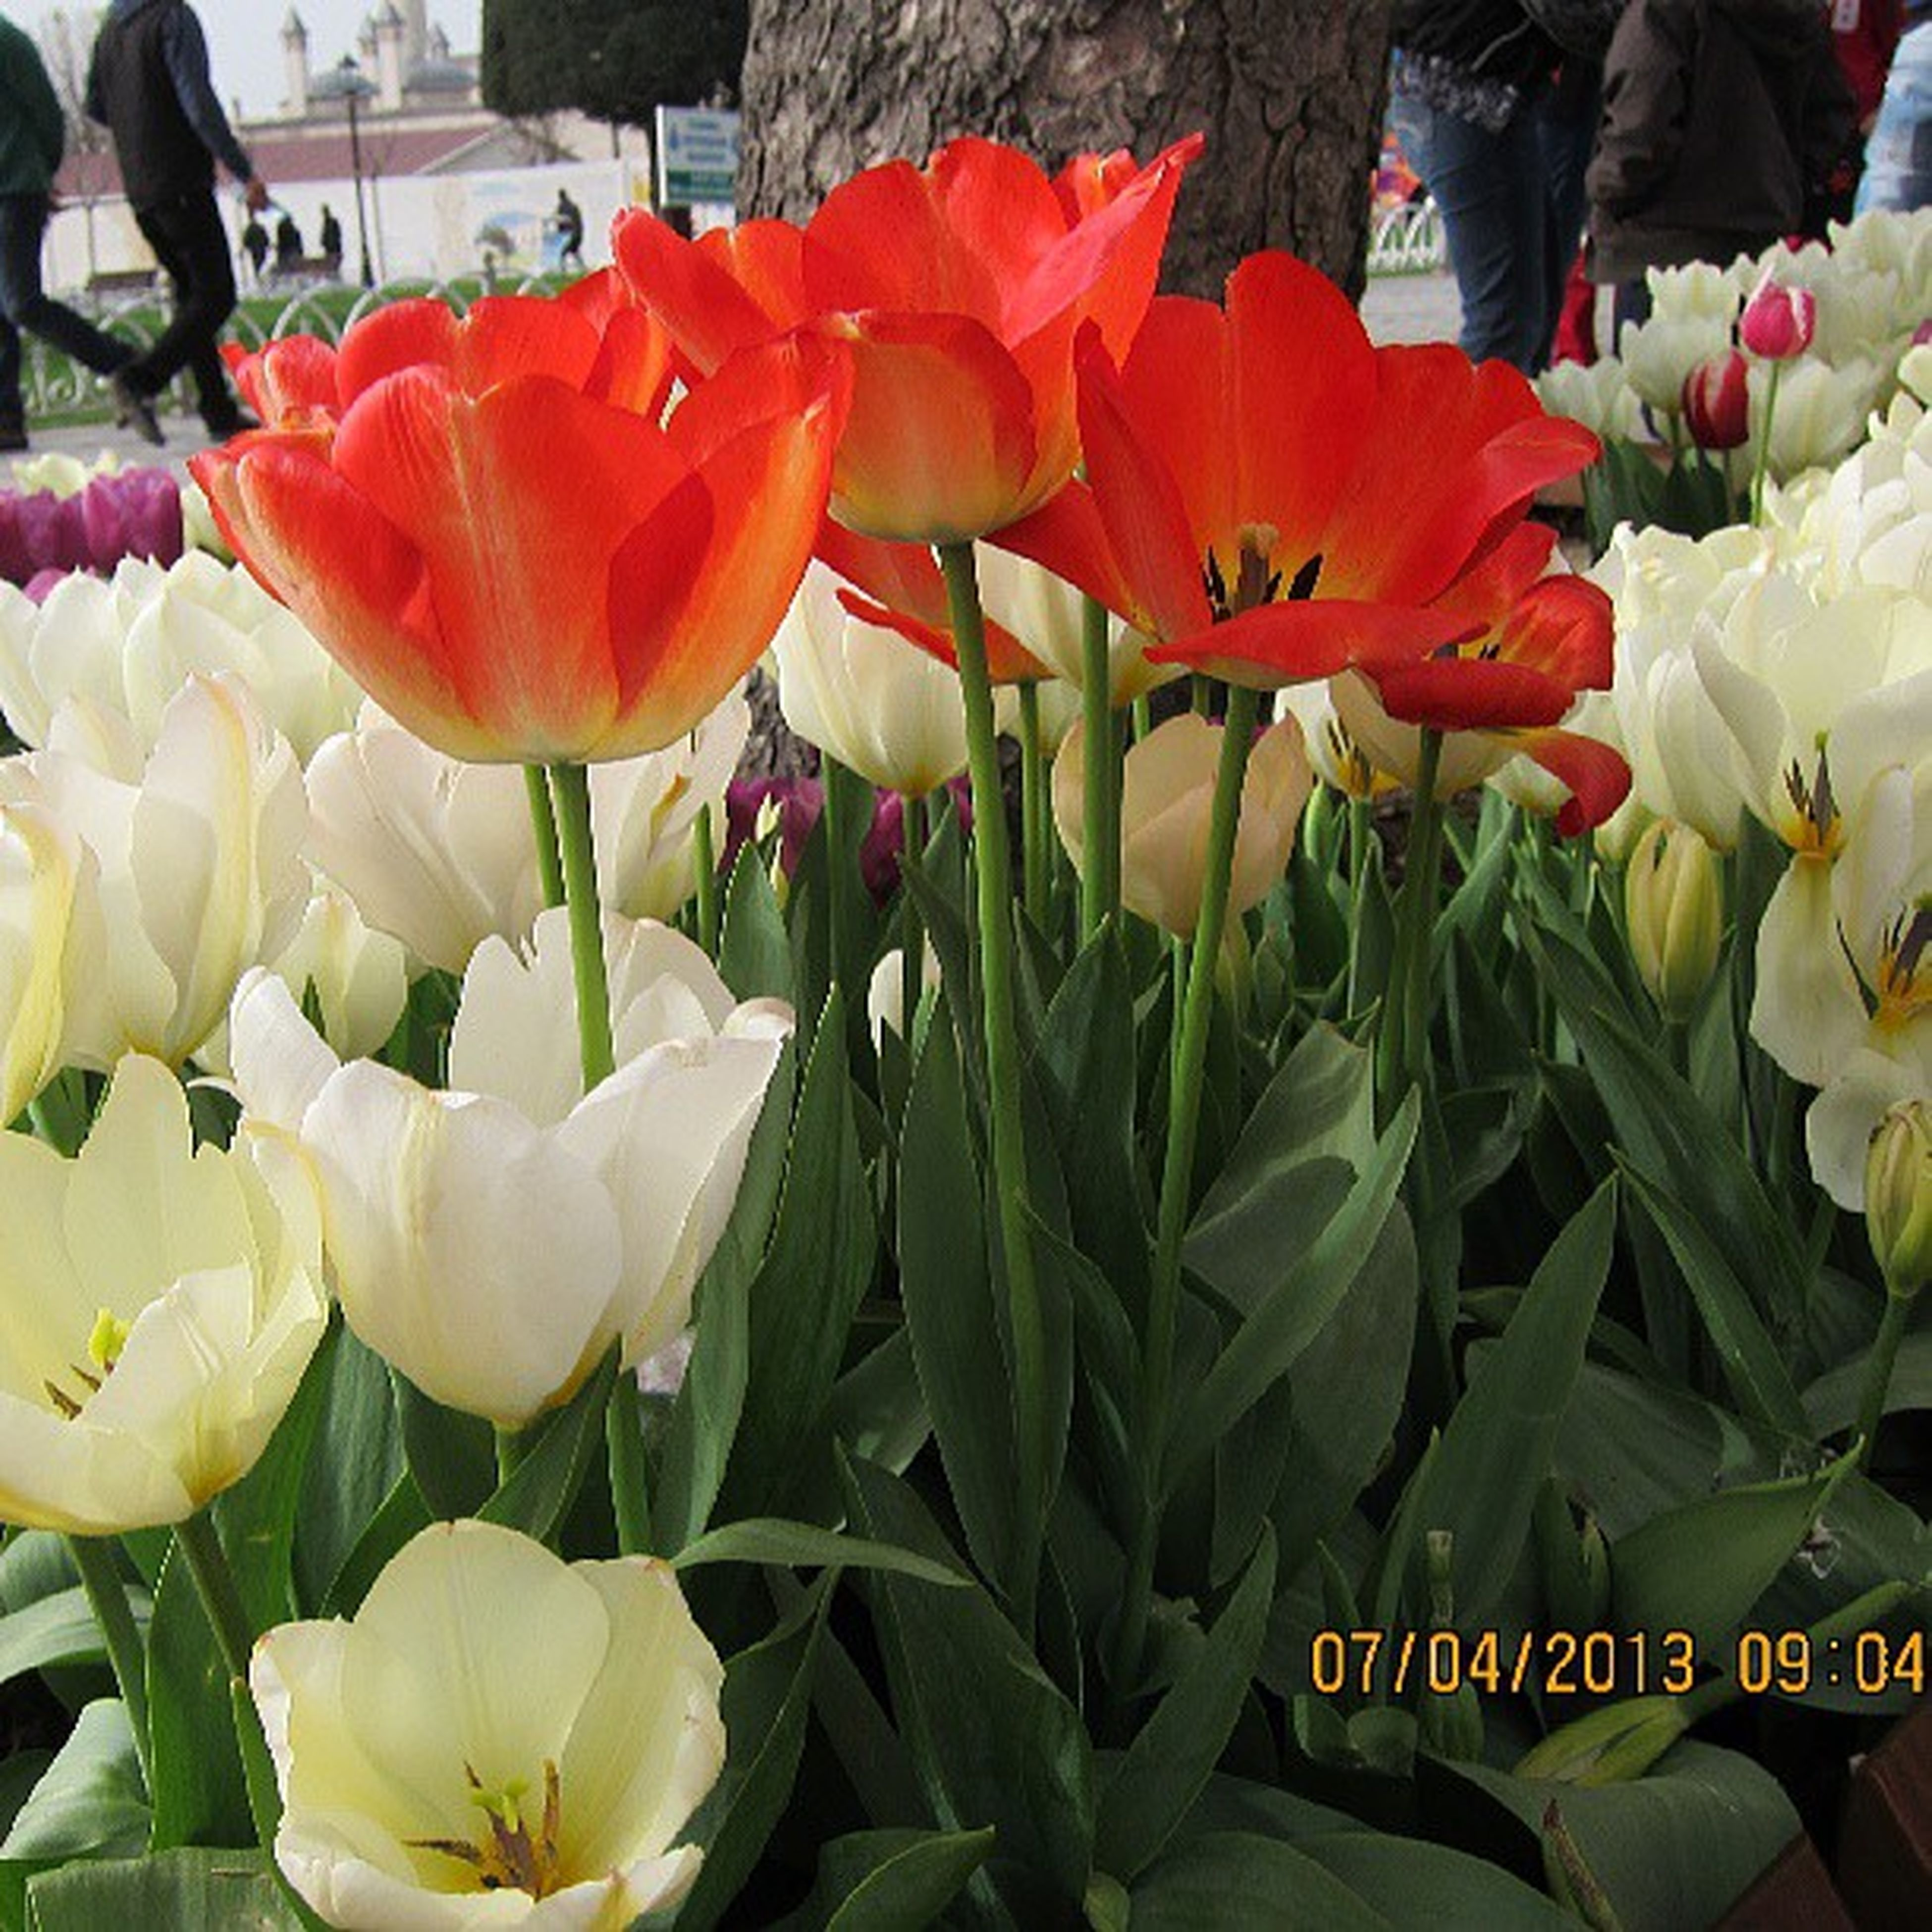 flower, freshness, petal, fragility, flower head, tulip, growth, beauty in nature, abundance, plant, nature, blooming, variation, close-up, high angle view, multi colored, day, red, outdoors, no people